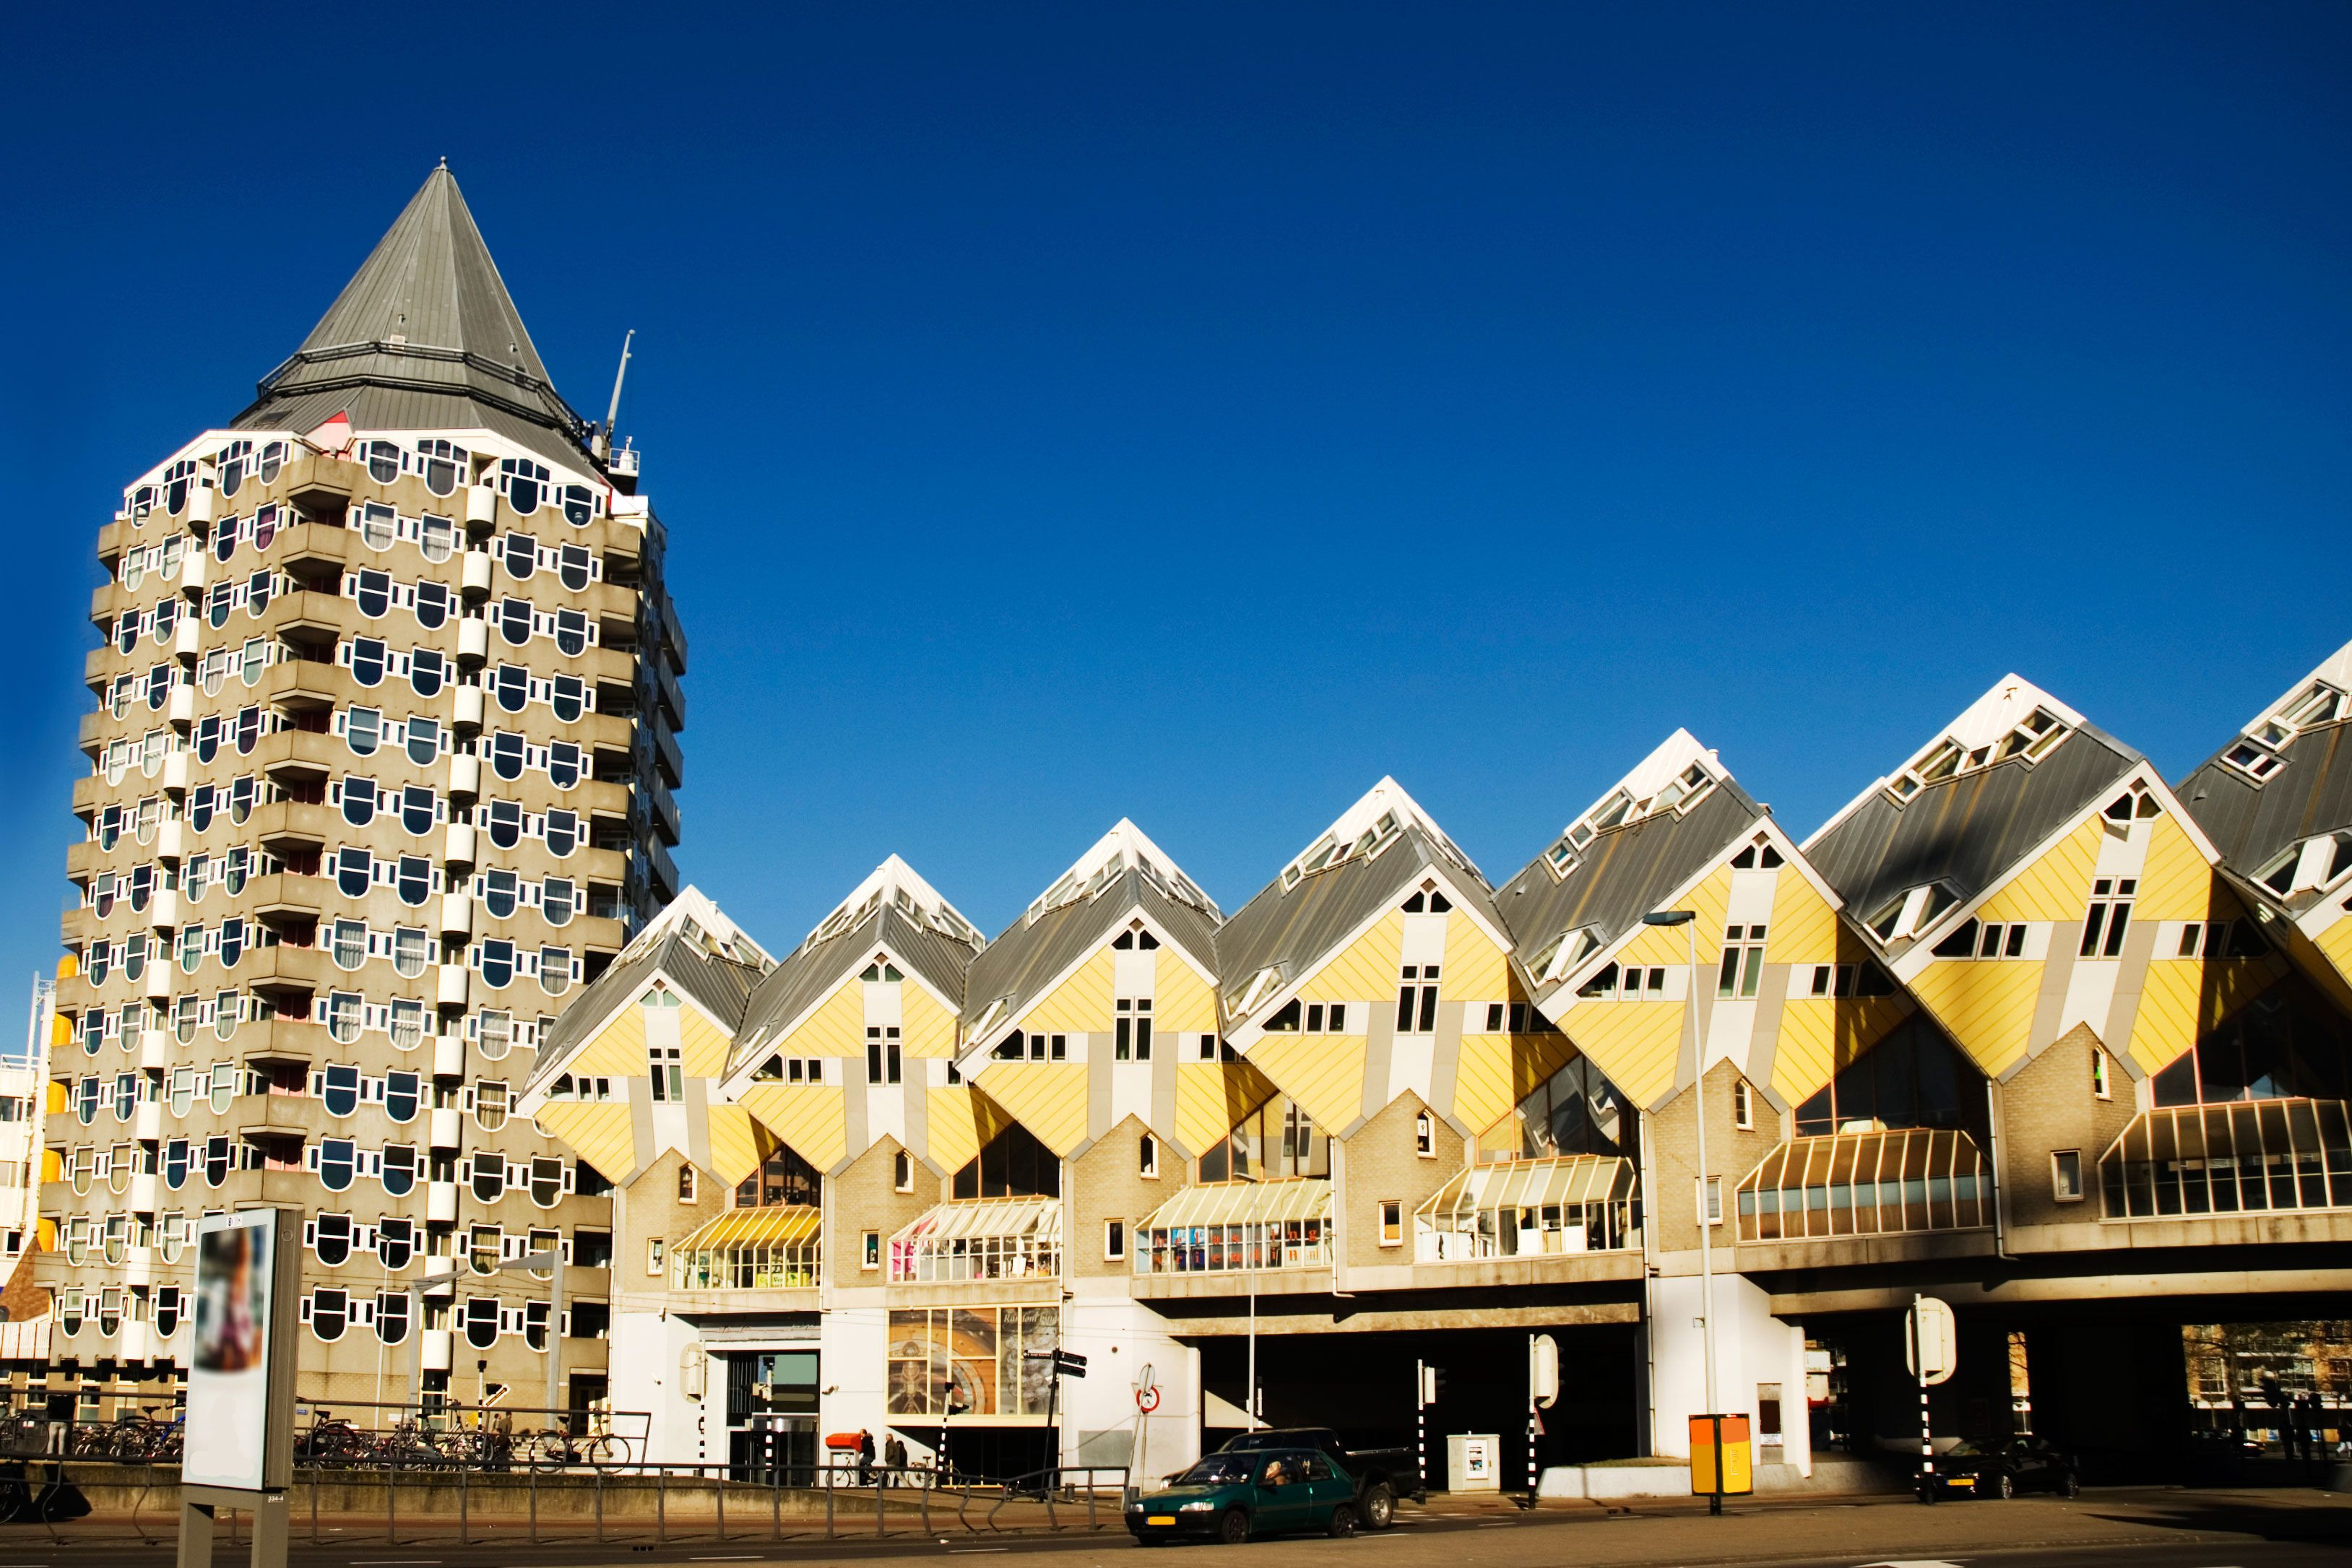 Kubik Haus Rotterdam Cubic Houses Now They Stand In Front Of The